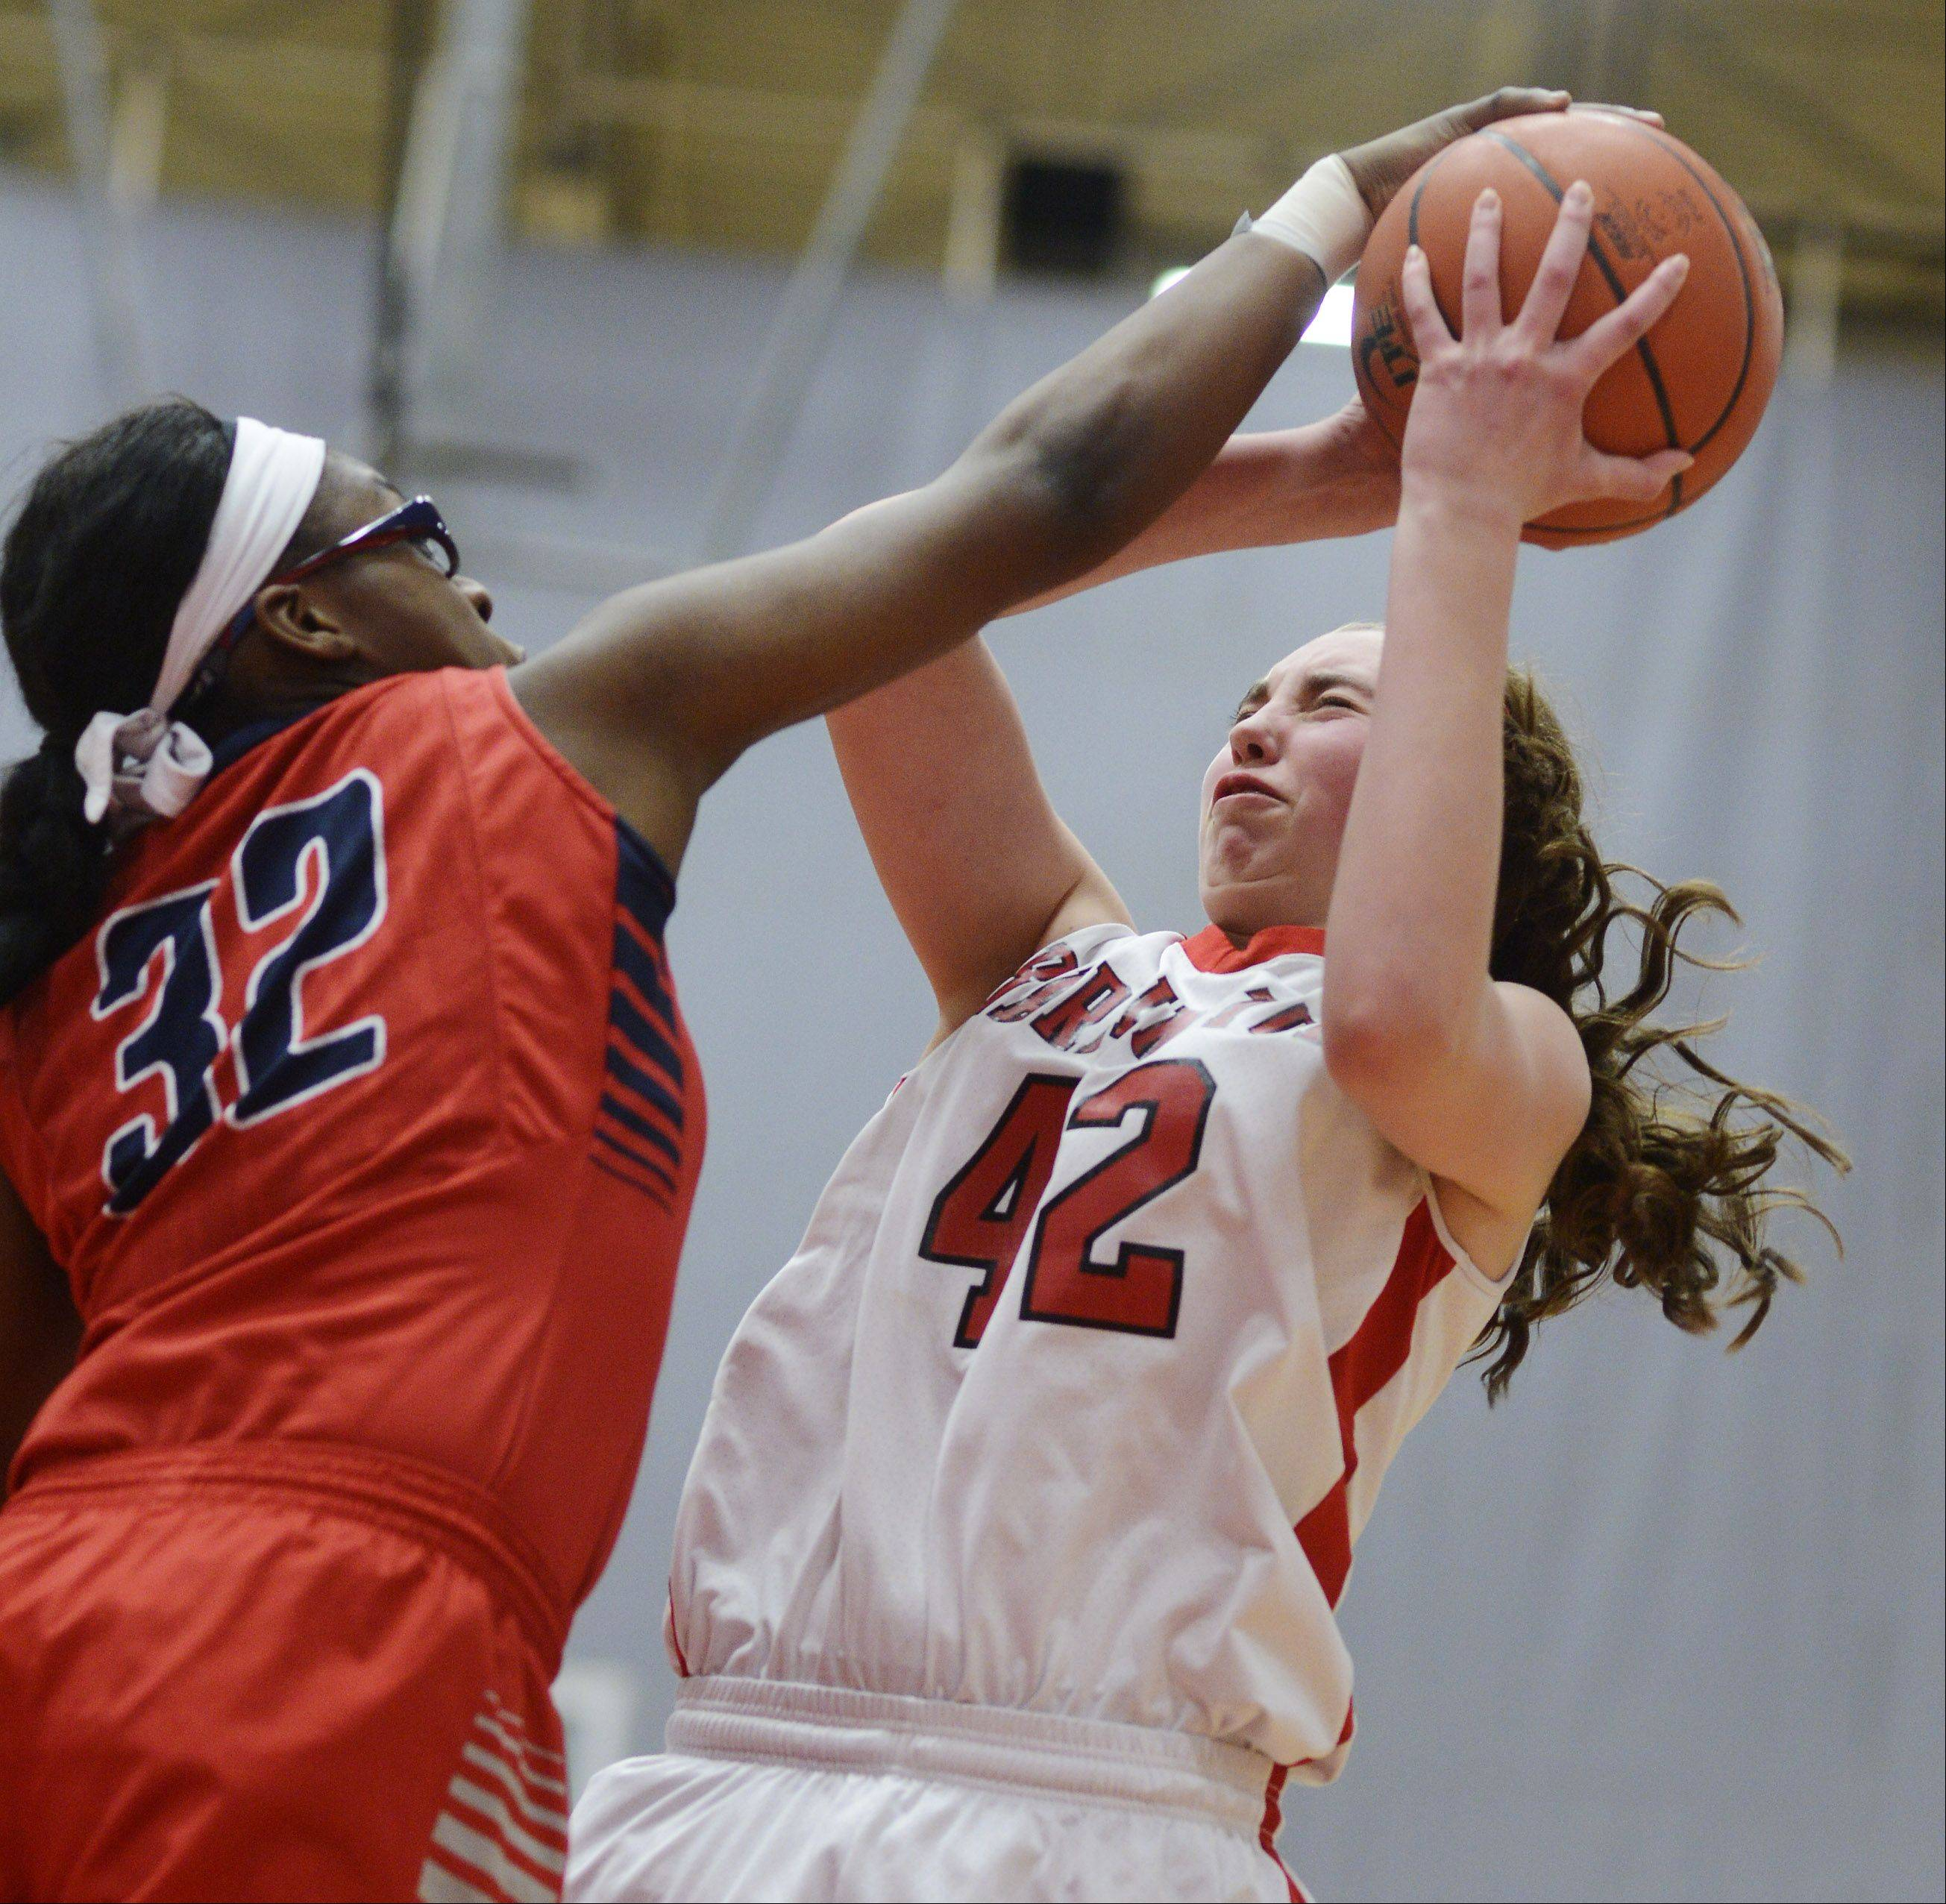 South Elgin's Bridgette Williams, left, blocks a shot by Barrington's Megan Talbot during Wednesday's game at Barrington.